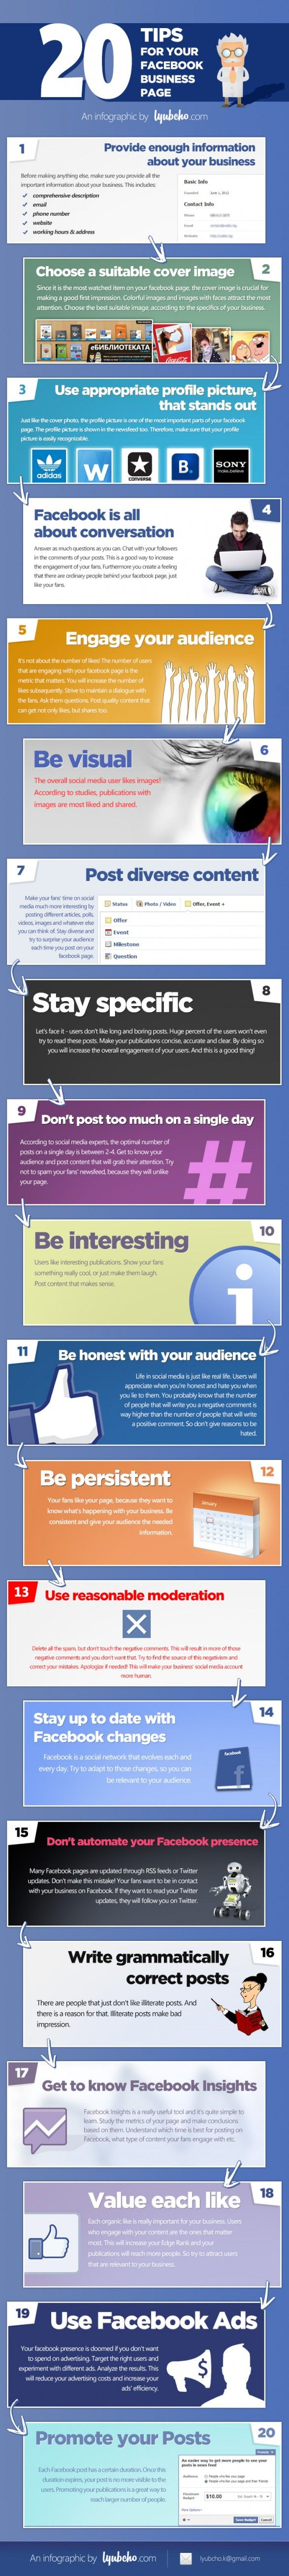 Top 5 Social Graphics: 20 Tips for your Facebook Business Page [Infographic]